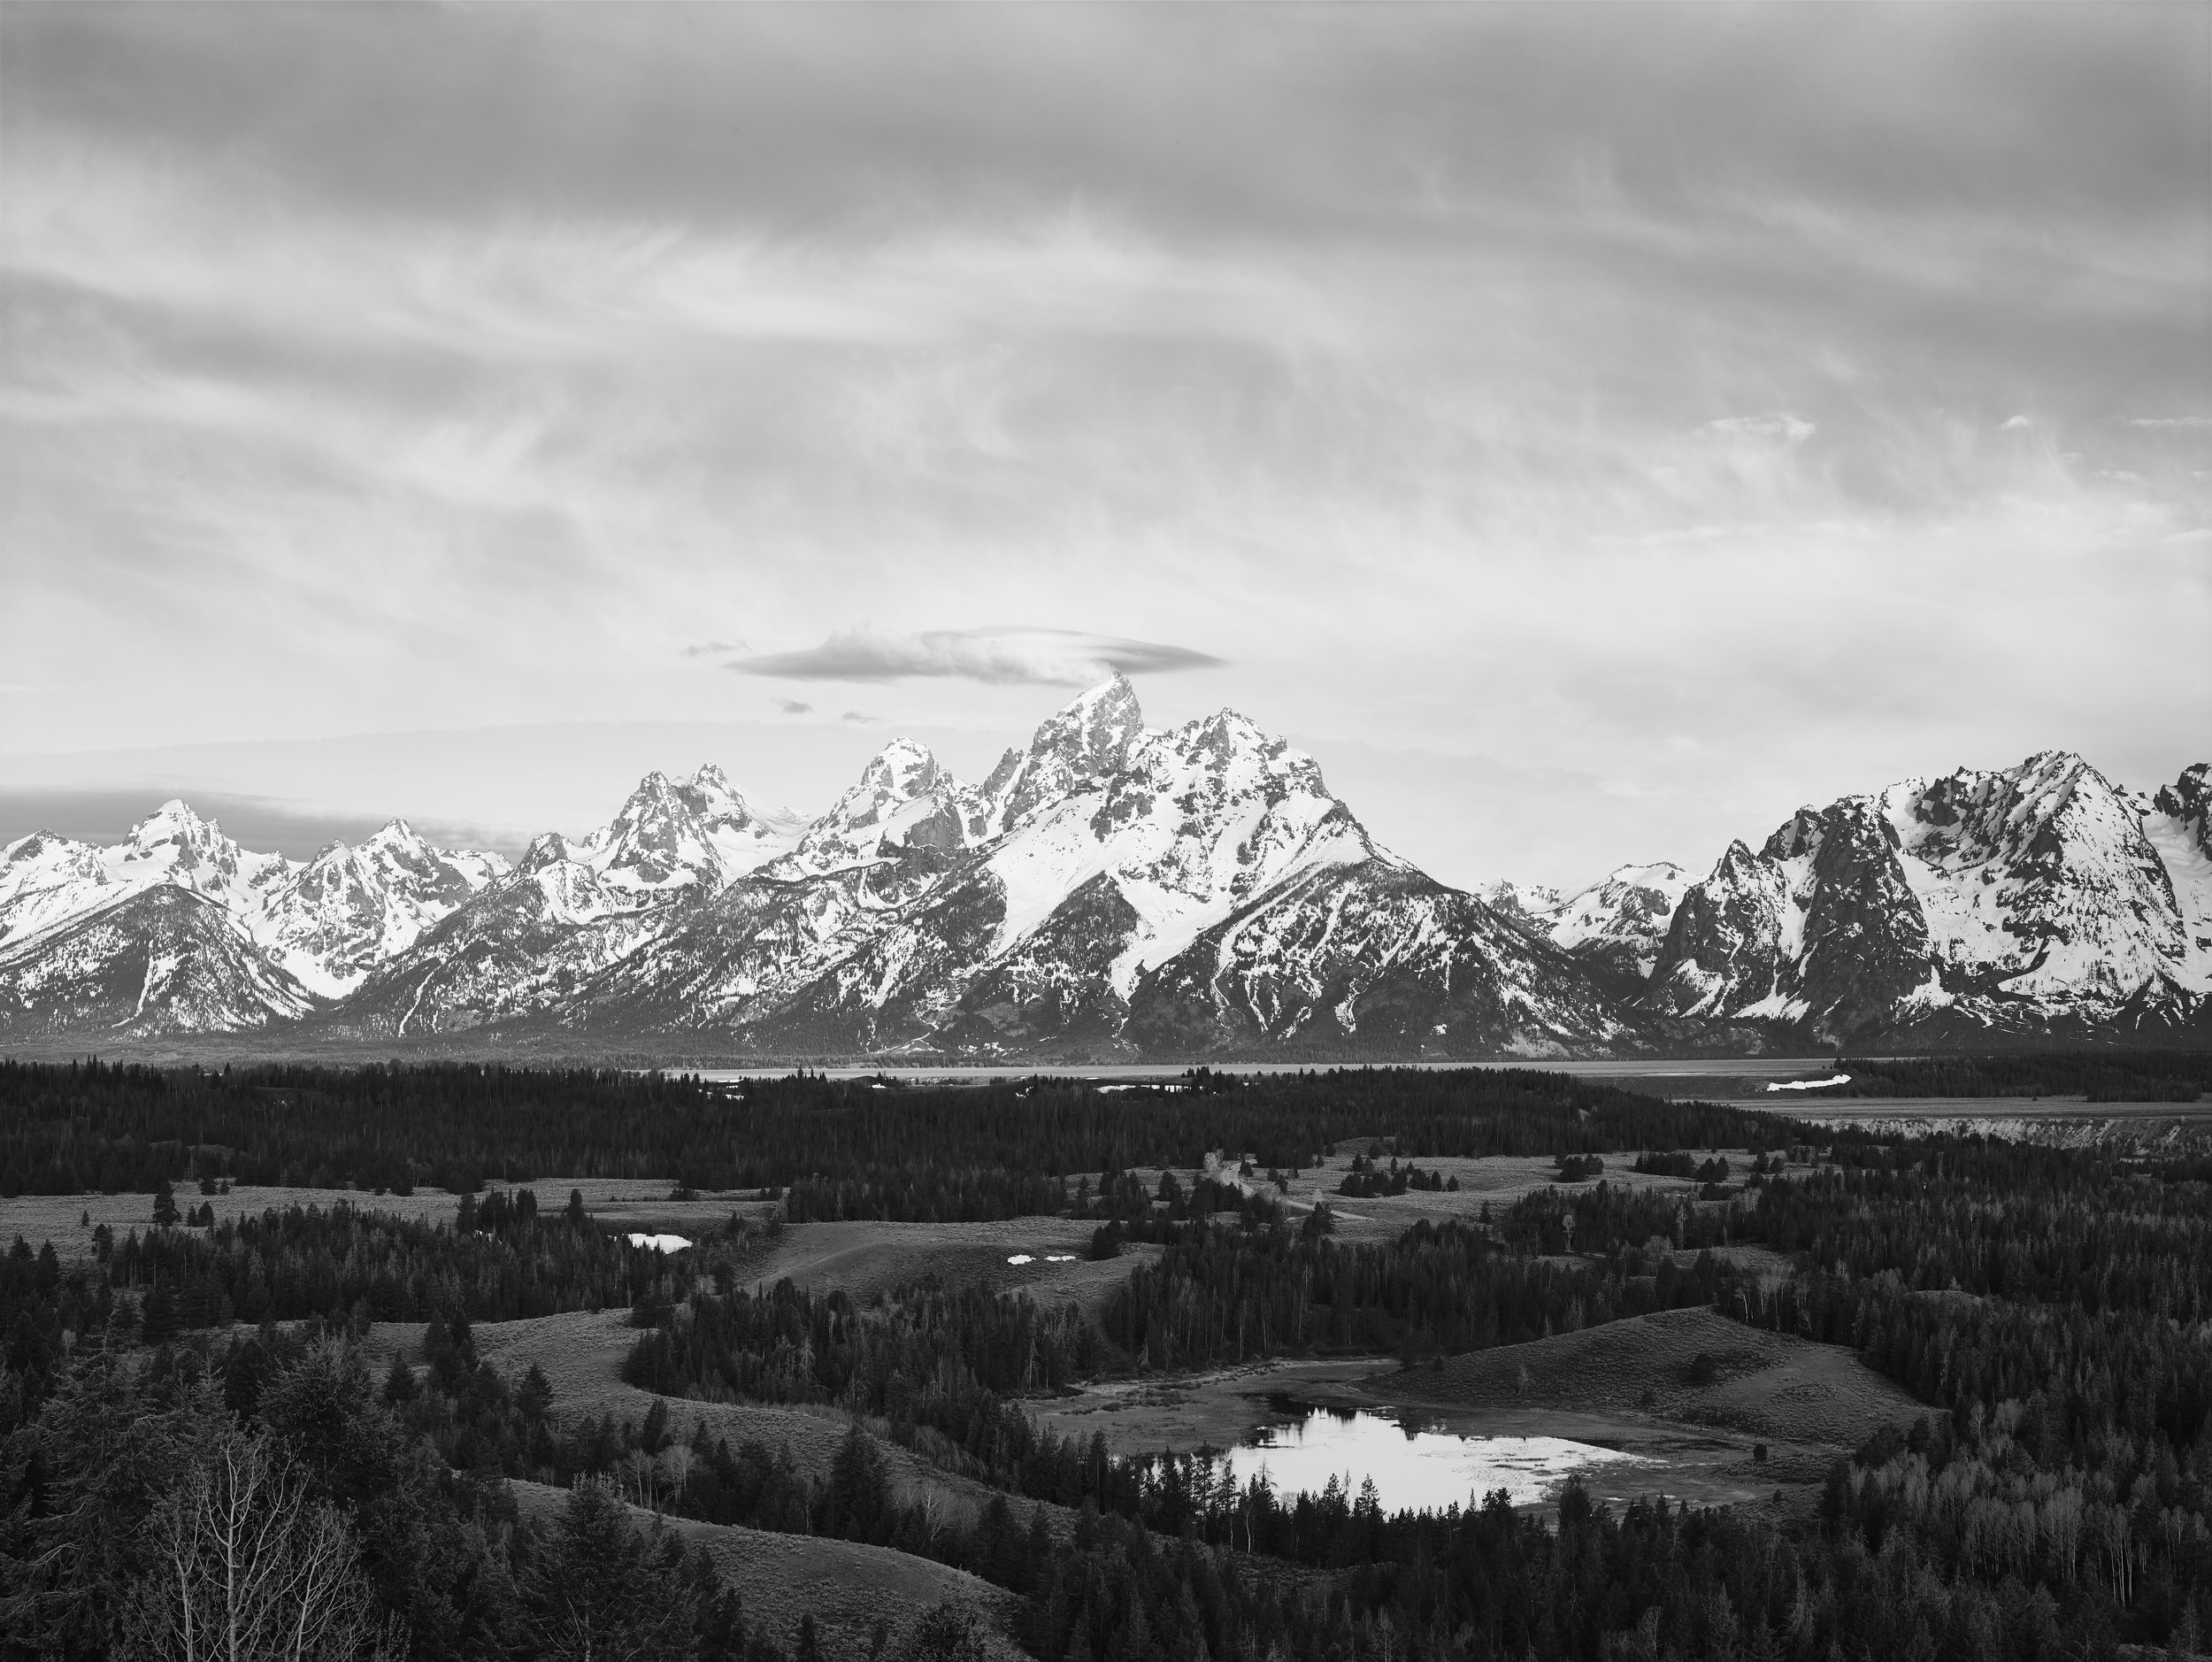 """Even after being converted to black & white with some light post-processing, this image still fails """"the squint test."""" This image needs a grad filter."""